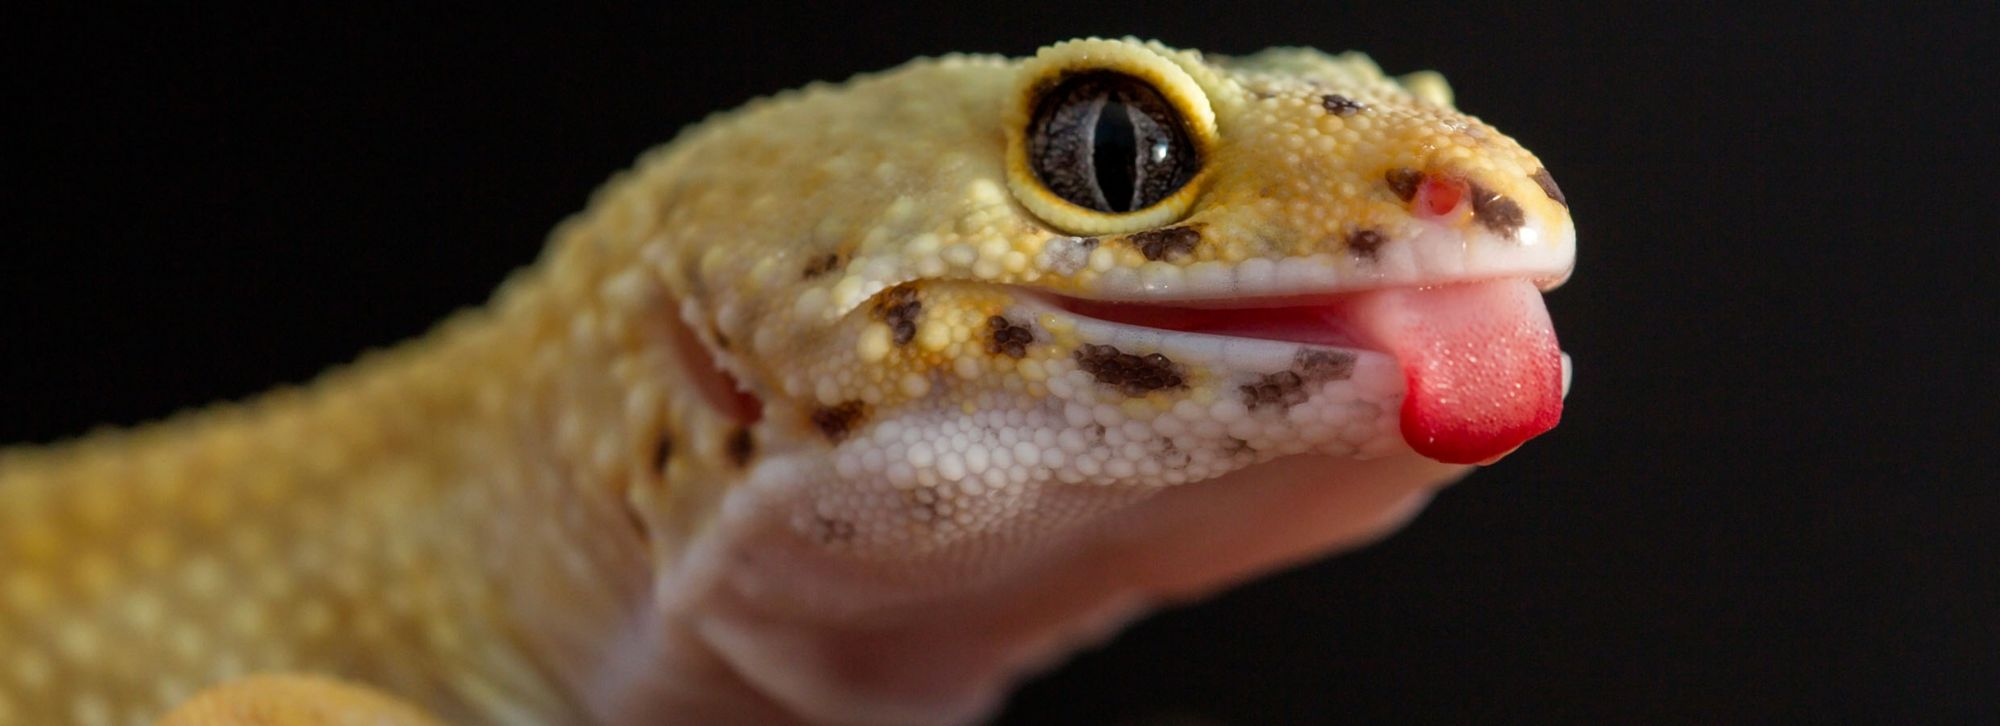 What Should I Feed My Leopard Gecko?